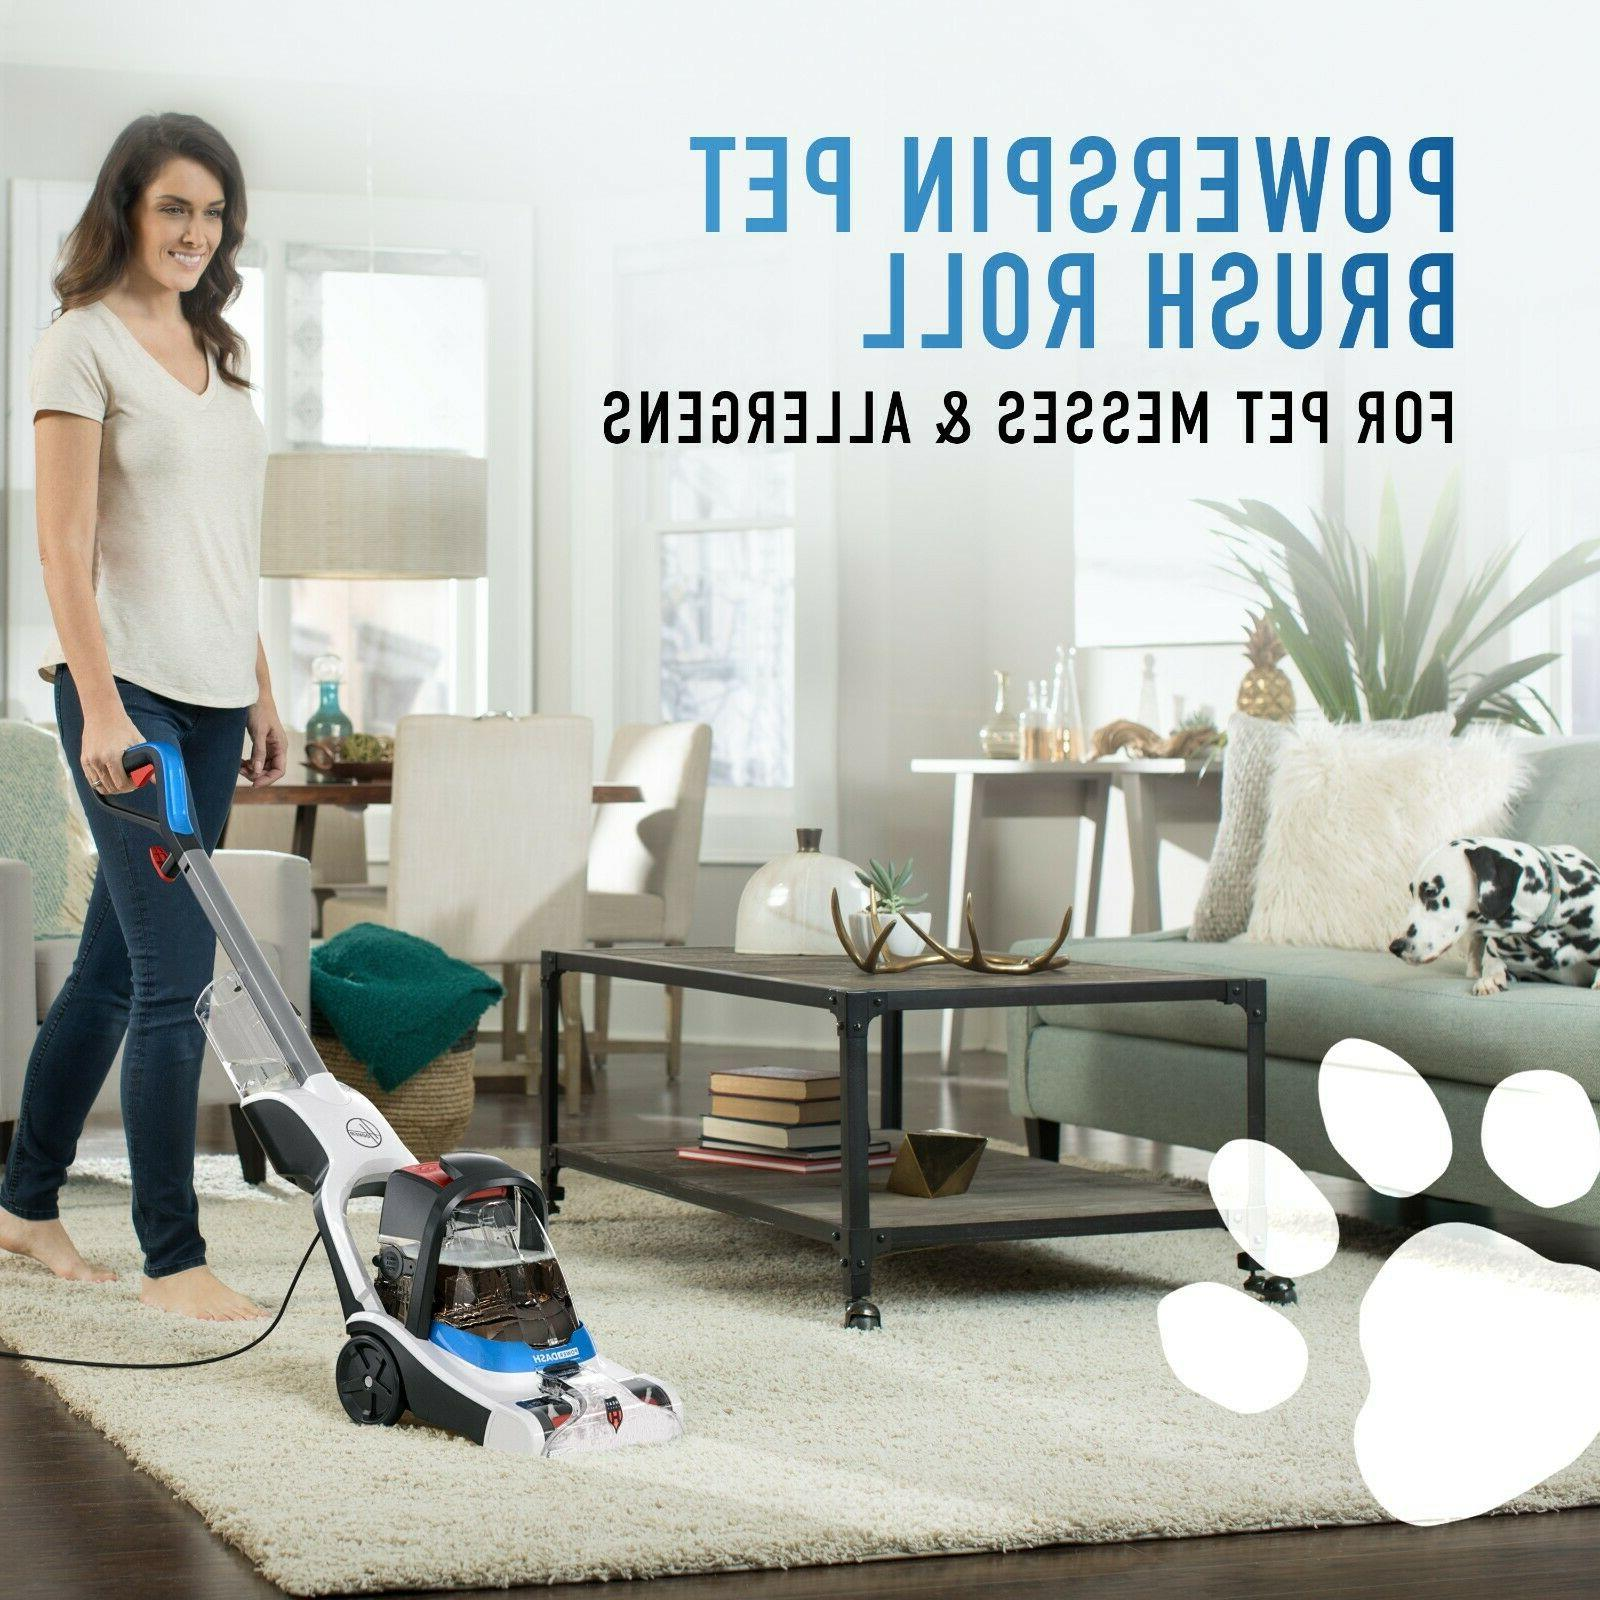 Hoover PowerDash Carpet Cleaner Antimicrobial Brushes, FH50710 Shampooer